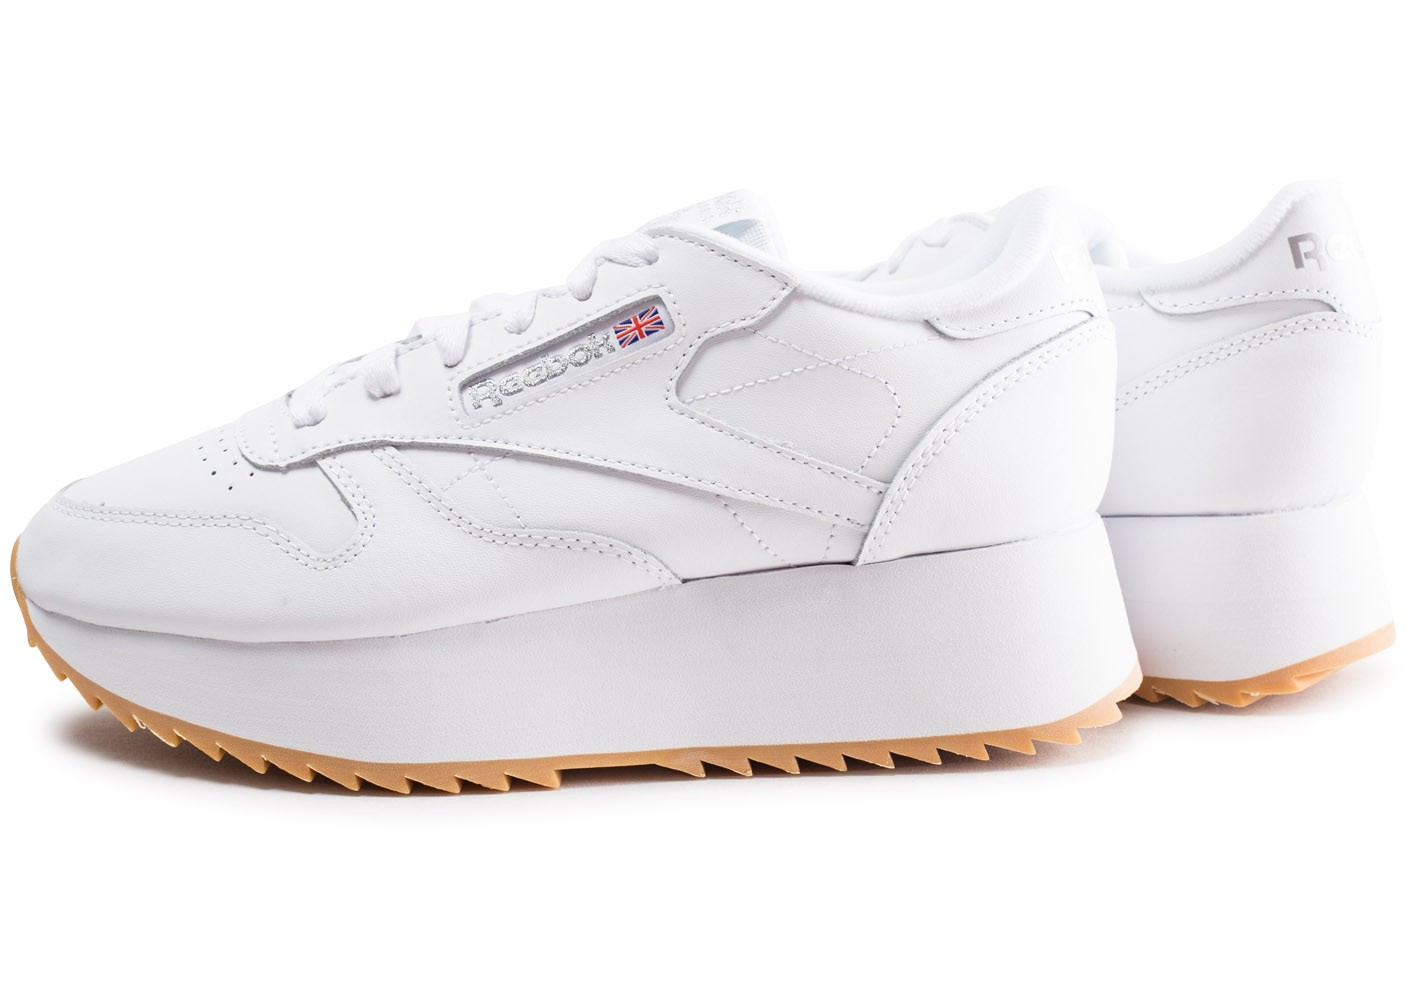 Reebok Leather Blanche Chaussures Double Femme Classic Baskets Tlu13cJFK